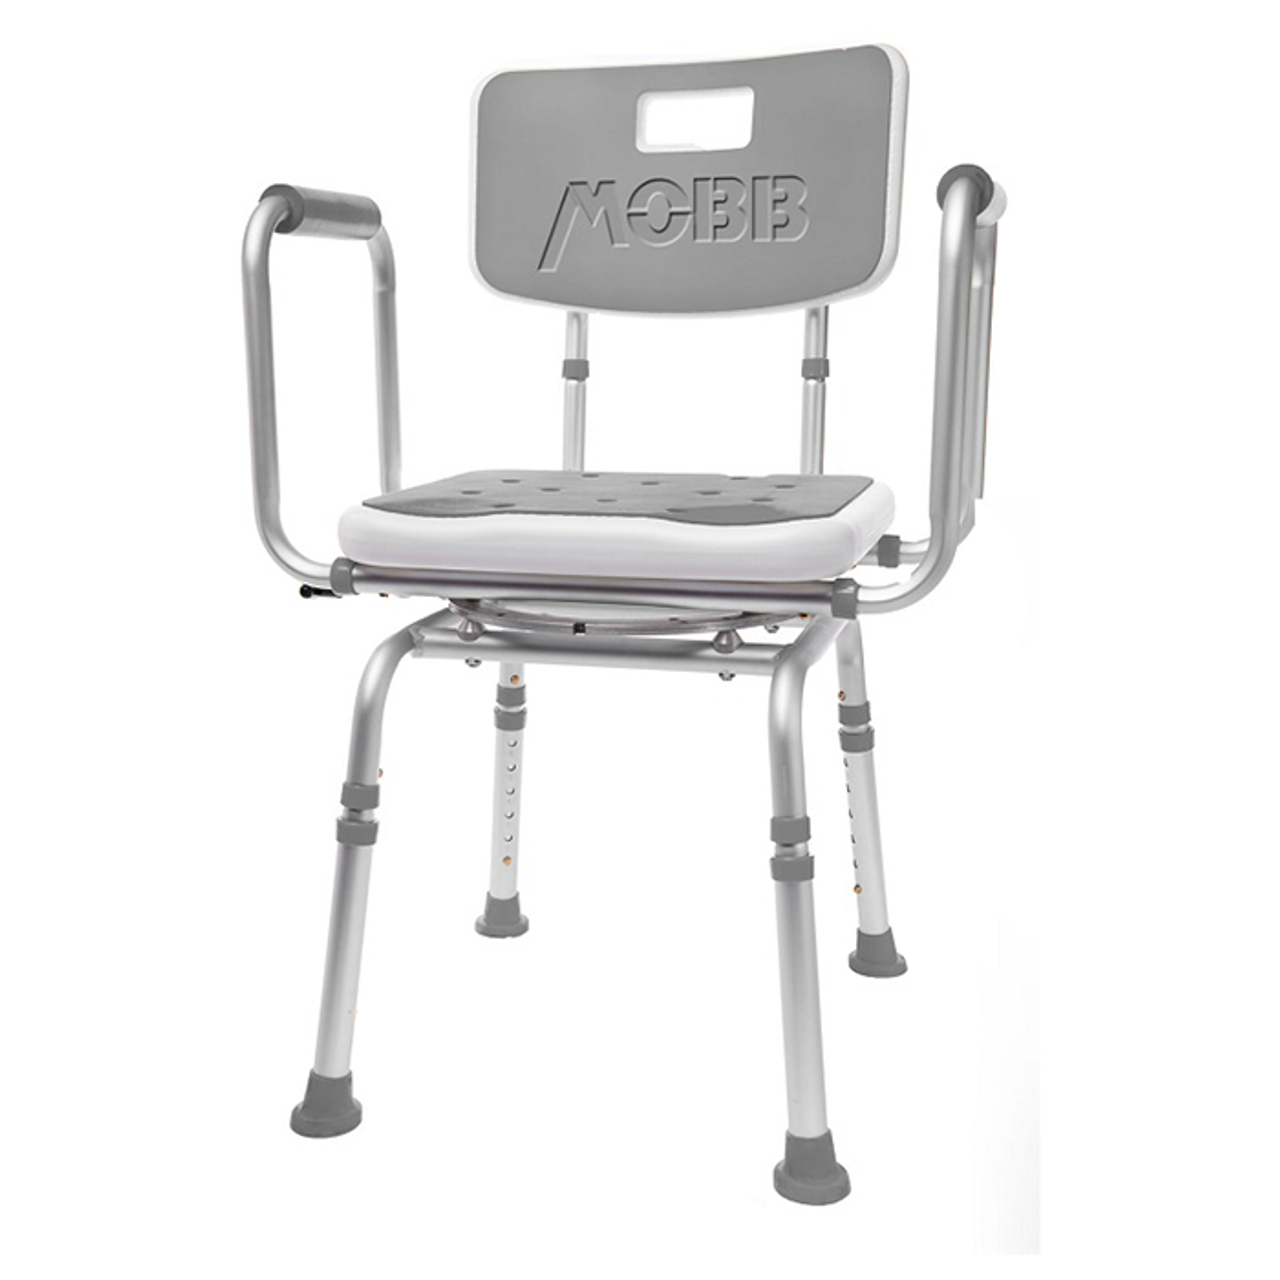 Mobb Swivel Shower Chair - Healthcare Solutions